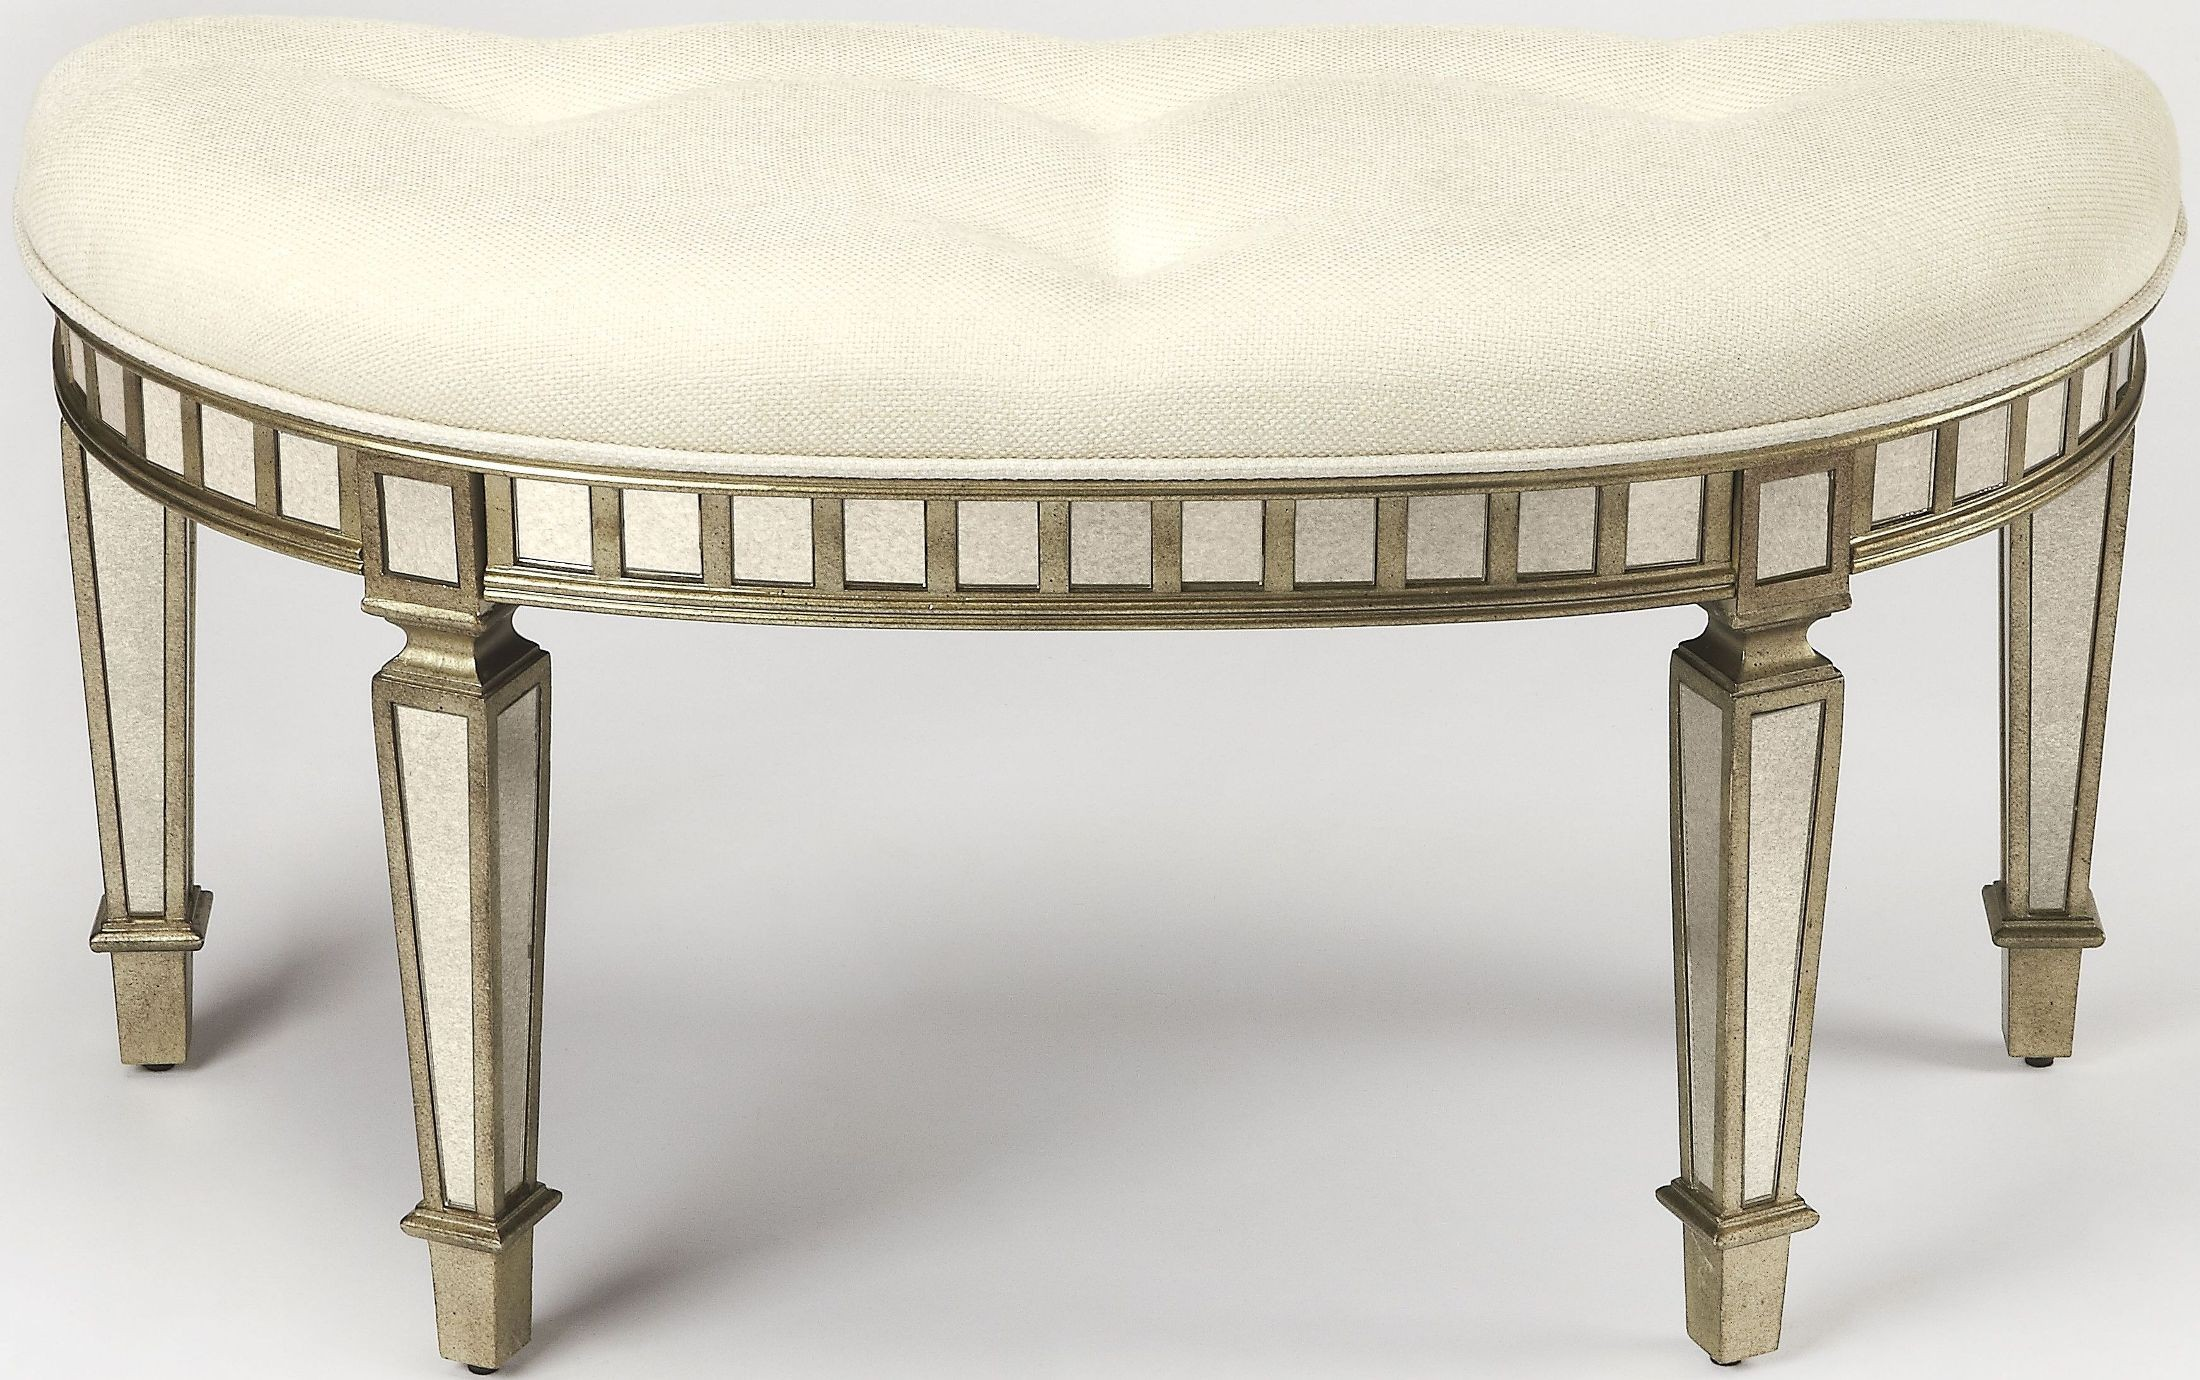 Garbo Mirrored Demilune Bench From Butler Coleman Furniture